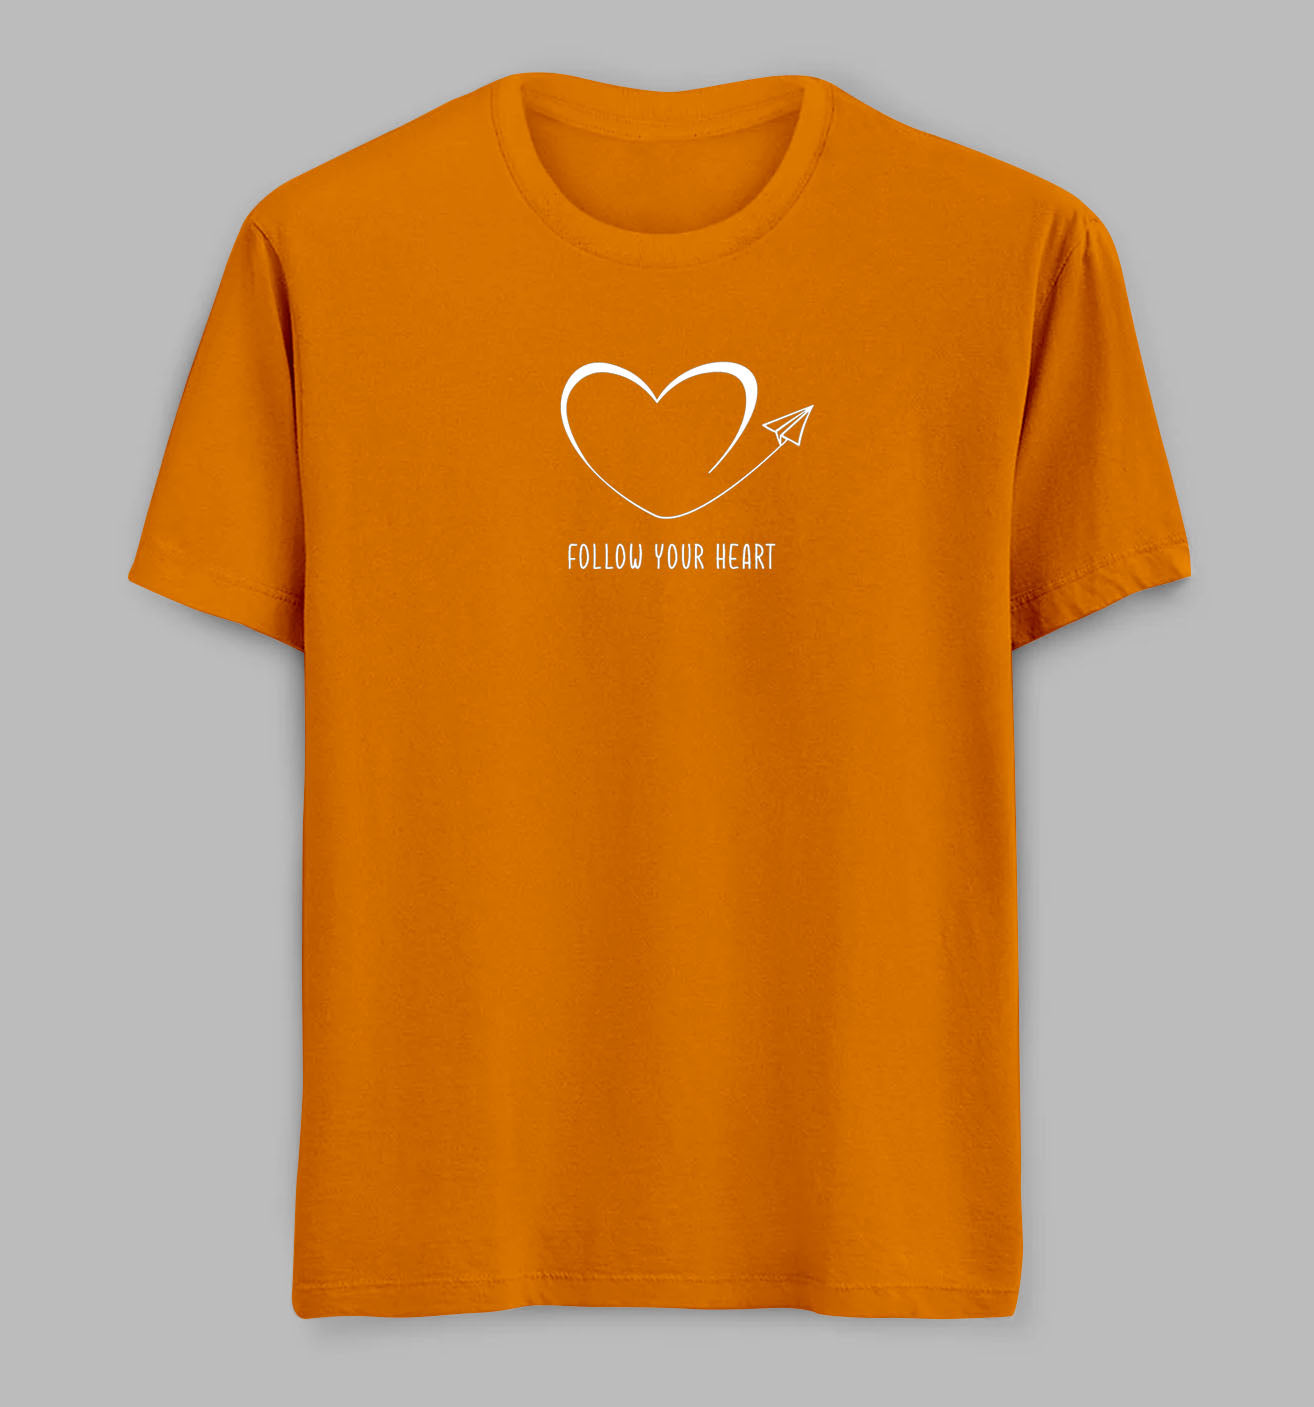 Follow Your Heart Tees/ TShirts